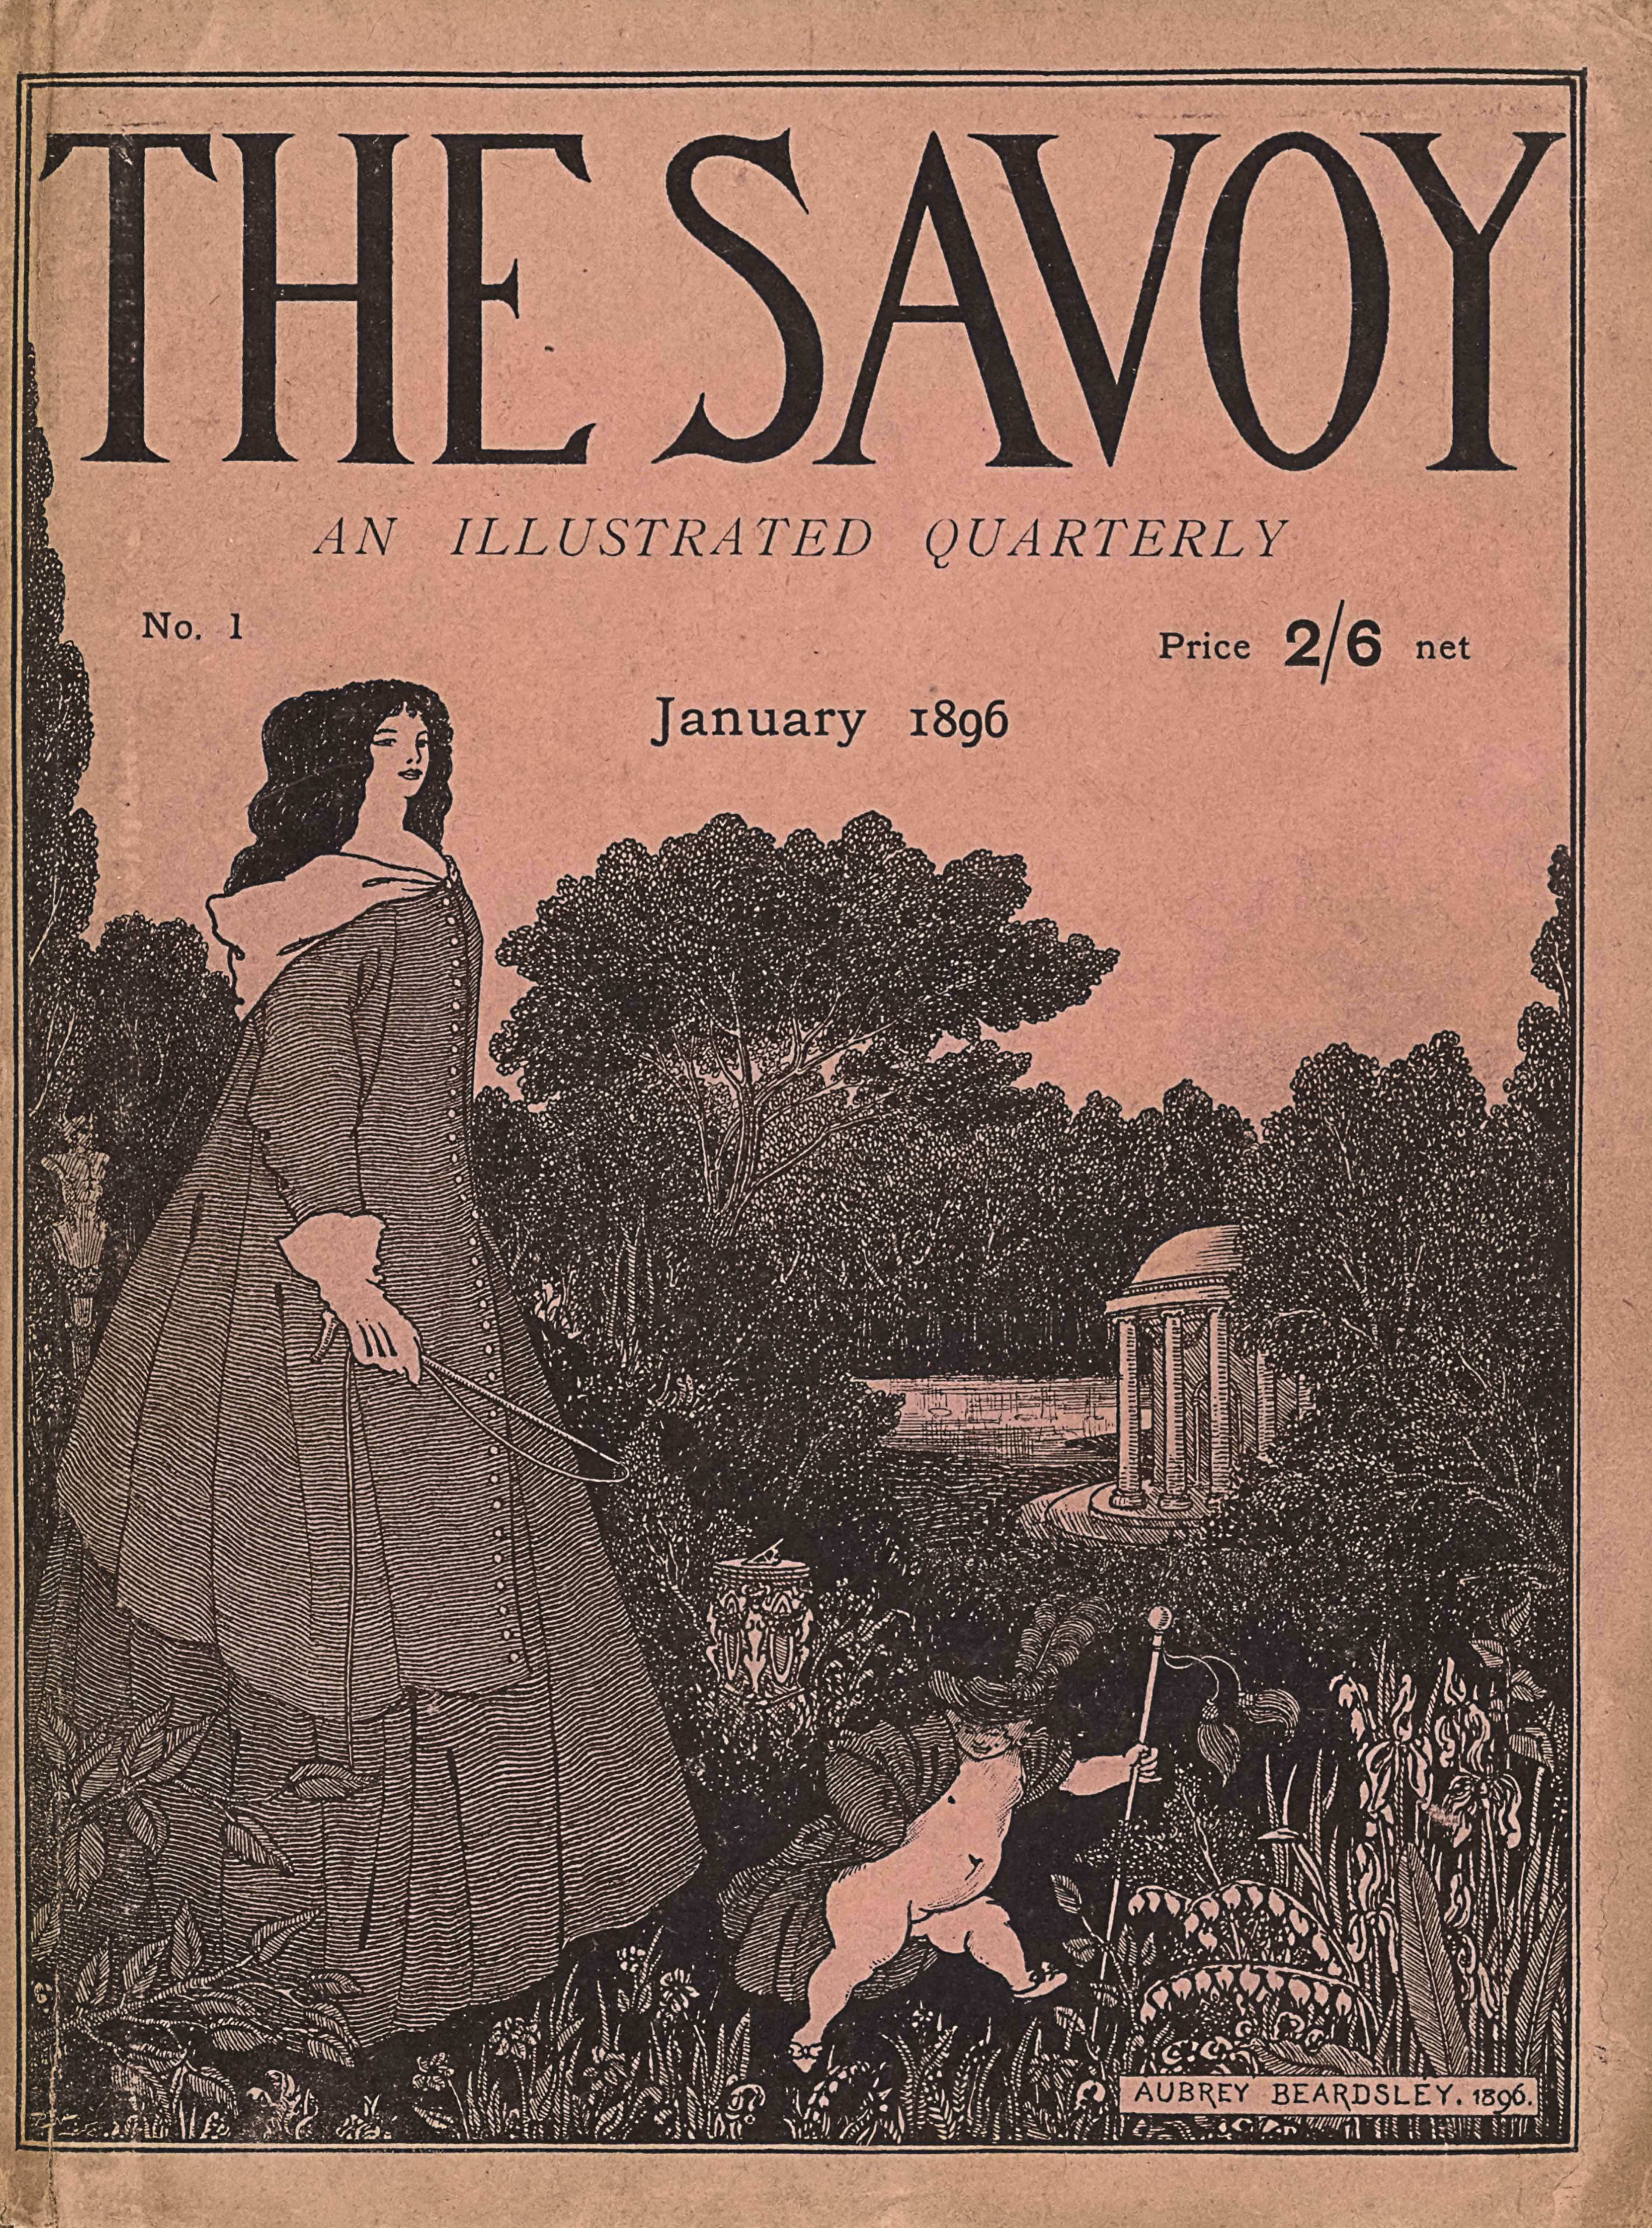 "The cover image, in portrait orientation, combines a line-block reproduction of a pen-and-ink design with letterpress. The title: ""THE SAVOY"" [caps] appears in the top quarter of the page, with the text ""AN ILLUSTRATED QUARTERLY"" [caps, italics] centered below. One row down the text ""No. 1"" is aligned on the left side, with the text ""Price 2/6 net"" in the same line but aligned to the right. Centered in the line below is the text ""January 1896."" A tall woman stands in the bottom left foreground, rising up two-thirds of the page to meet the bottom of the title. She is turned to the right and her face appears in two-thirds profile. She is dressed in a full-length gown with horizontal stripes and an overcoat with buttons of the same material on top. She has a white hood attached to her overcoat and dark voluminous hair worn down around her face. In her white-gloved hand is a riding crop at rest. In the central foreground a putto, or young cherub-like boy, appears naked apart from a striped overcoat, plumed hat, and bowed slippers. He is turned to the right with a hand on his hip and his other hand holding a tasseled staff that is taller than he is. Flowers and plants grow up along the bottom edge of the page in the foremost ground. A herm or male statue body stands to the left and in the background of the woman. An ornamented sundial sits in the mid-ground behind the putto. A tree protrudes taller than the rest of the forest in the central background. A pond is just in front of the forest in the mid-ground, with a Stowe rotunda emerging halfway behind trees to the right of the pond. The signature ""AUBREY BEARDSLEY, 1896."" [caps] appears in the bottom right corner of the page, within a rectangular box. The page is surrounded by a double-lined rectangle."